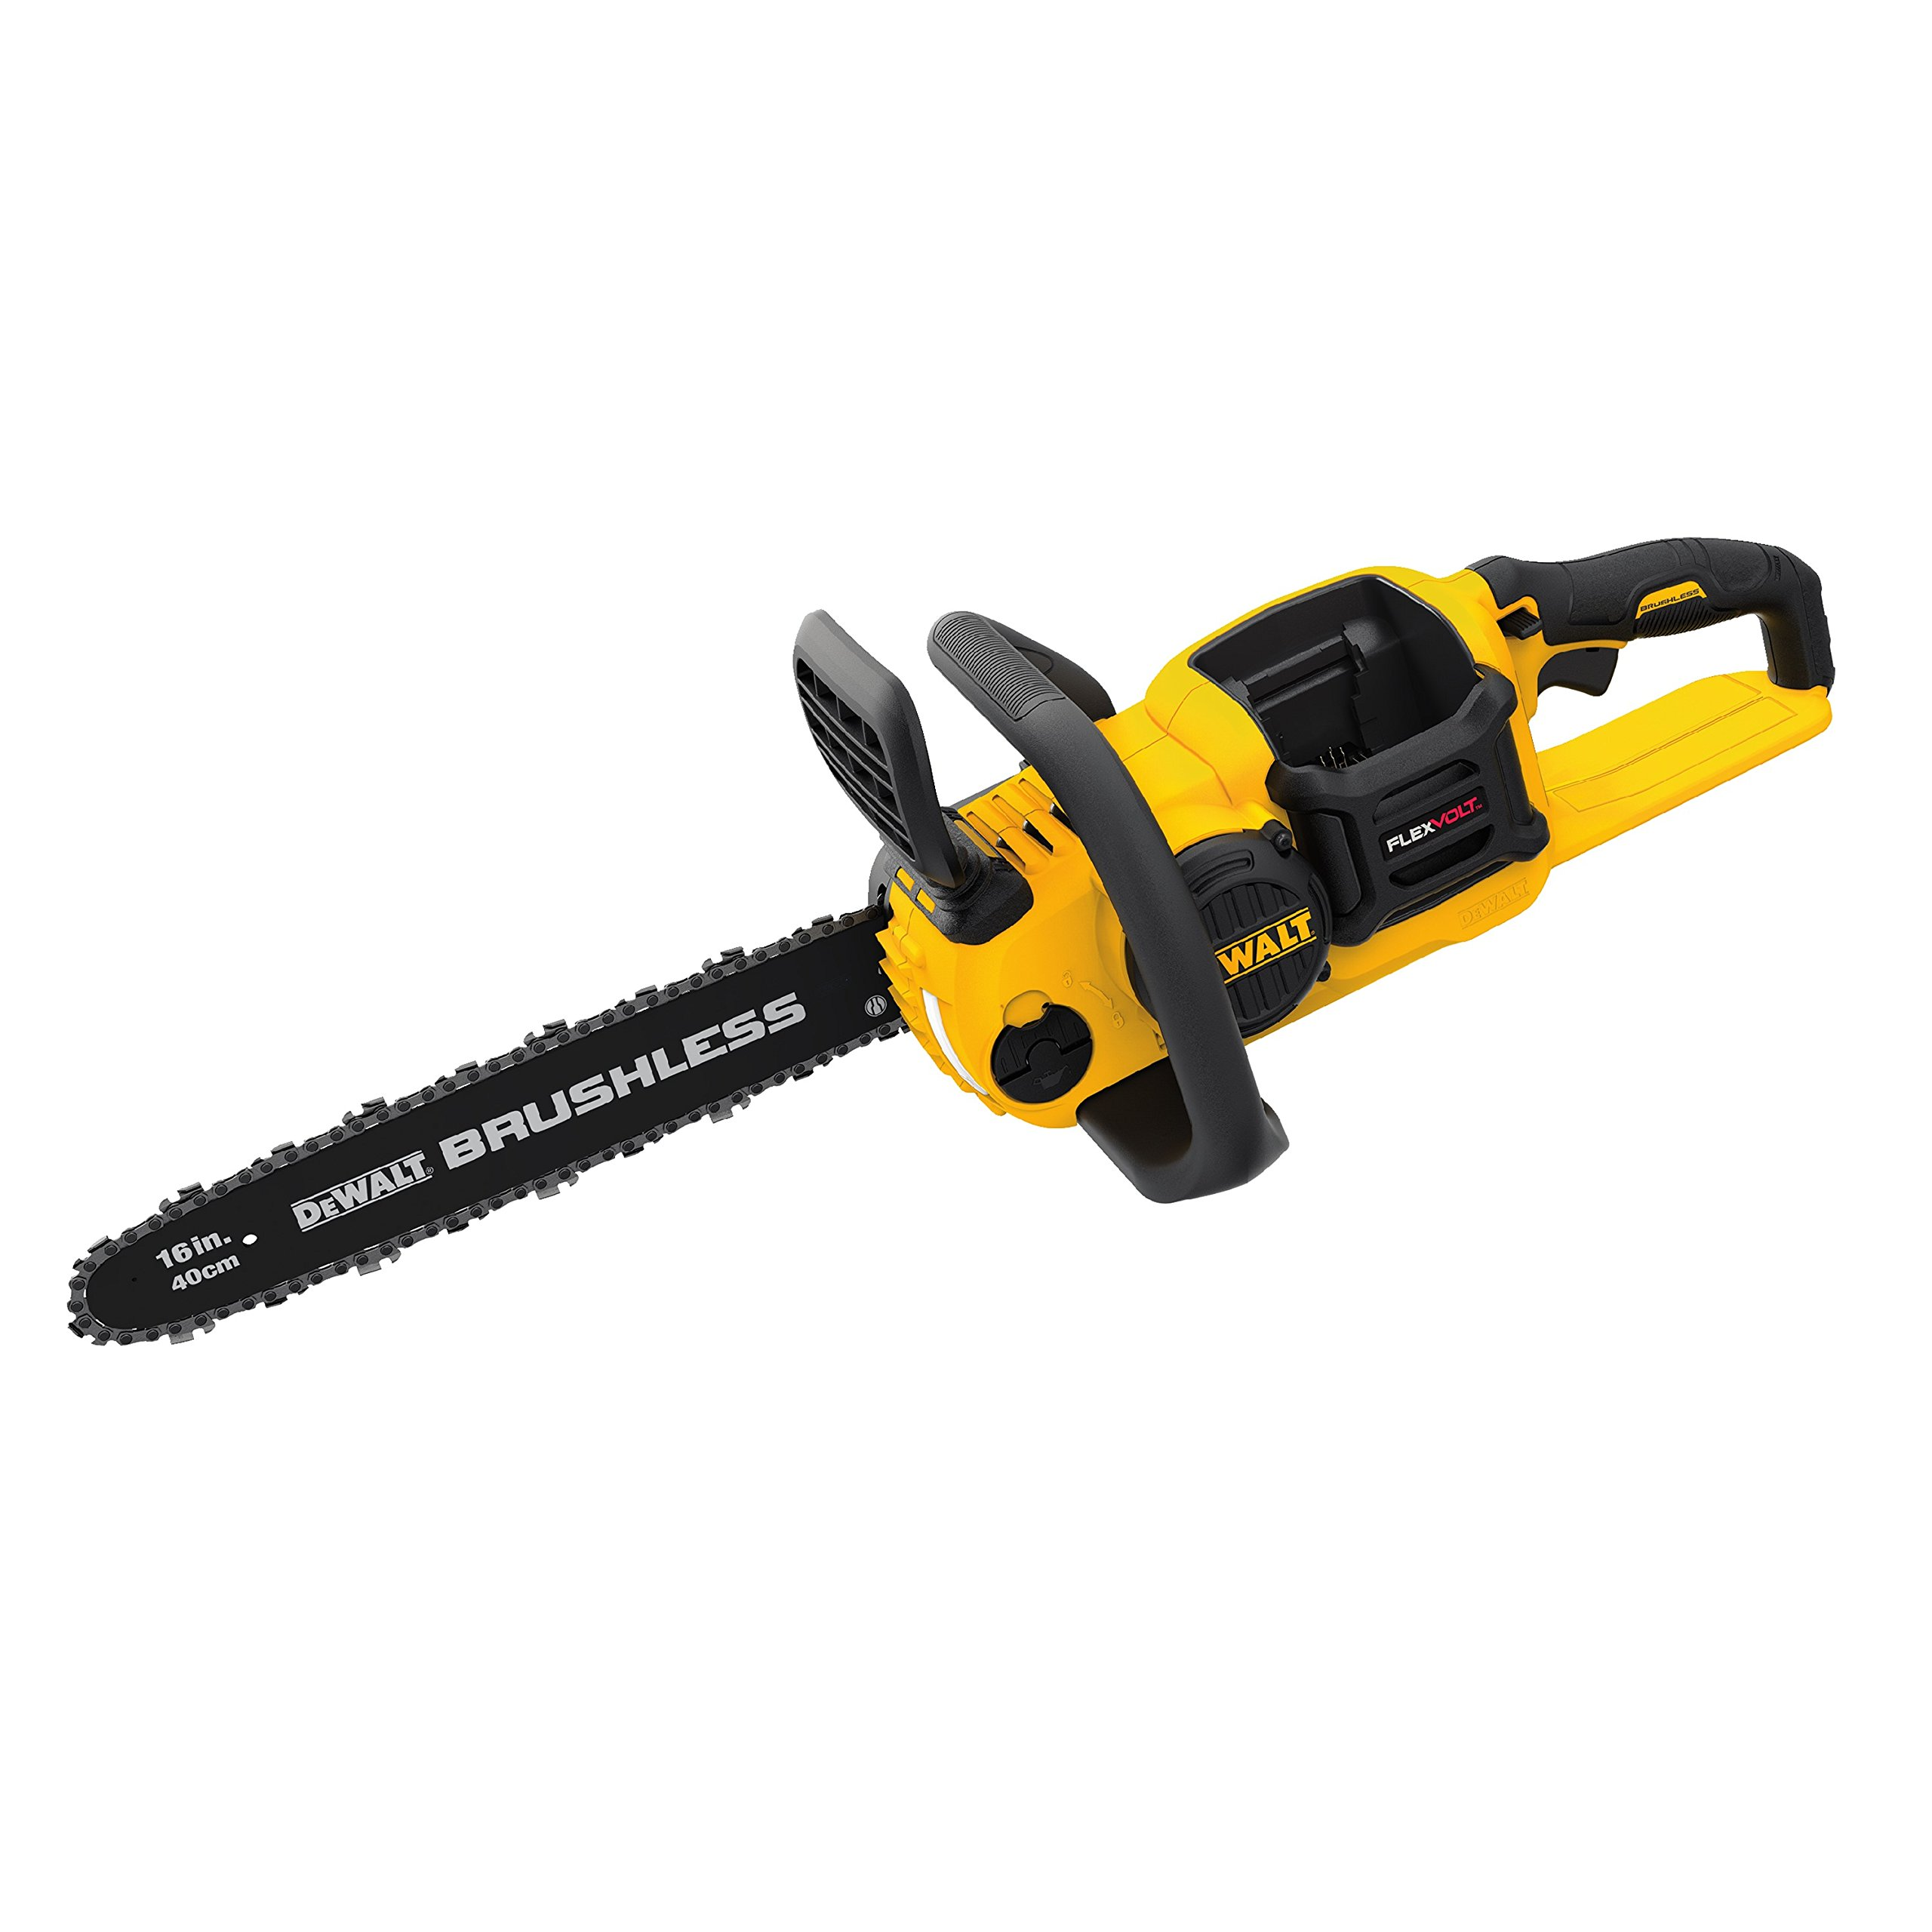 DEWALT DCCS670B Flexvolt 60V Max Brushless Cordless Chainsaw